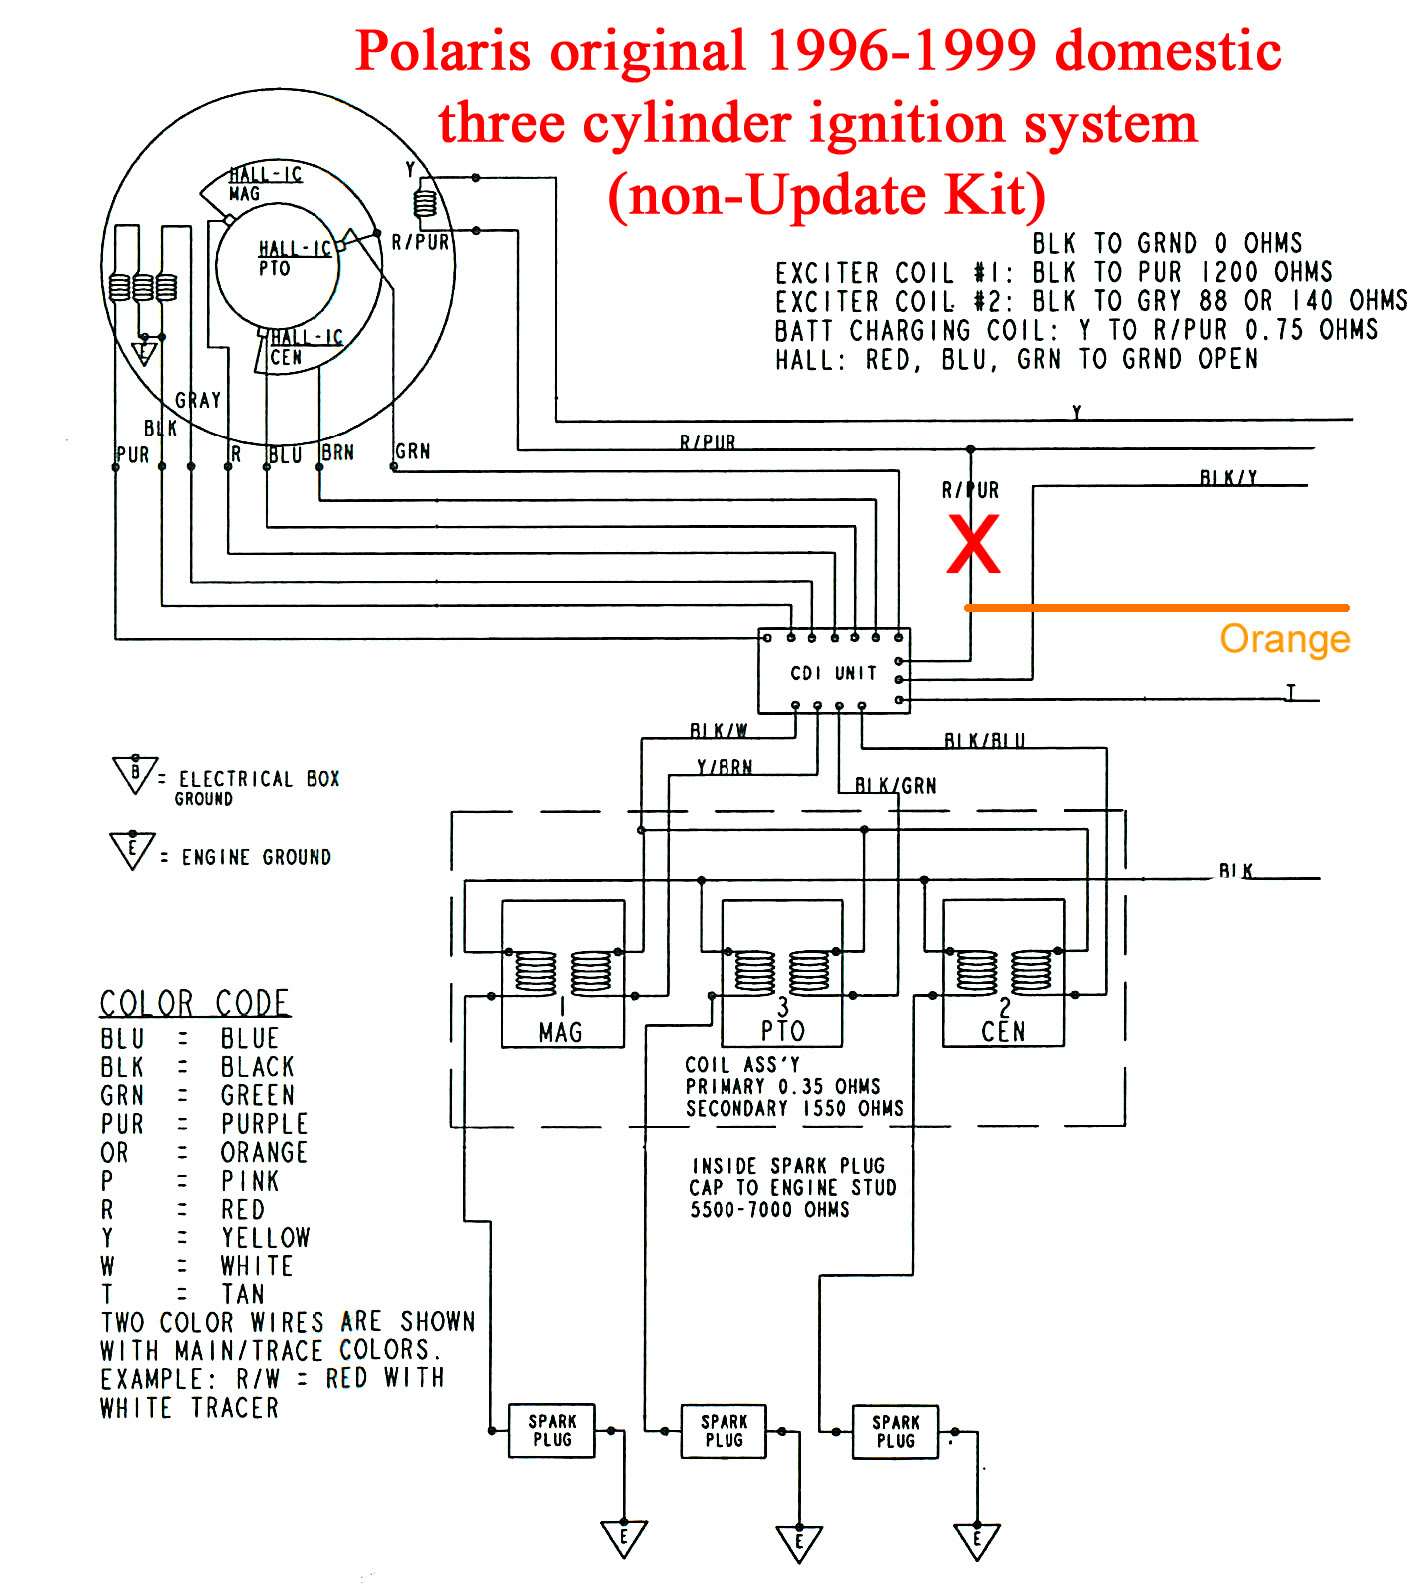 21 New Atv Ignition Switch Wiring Diagram